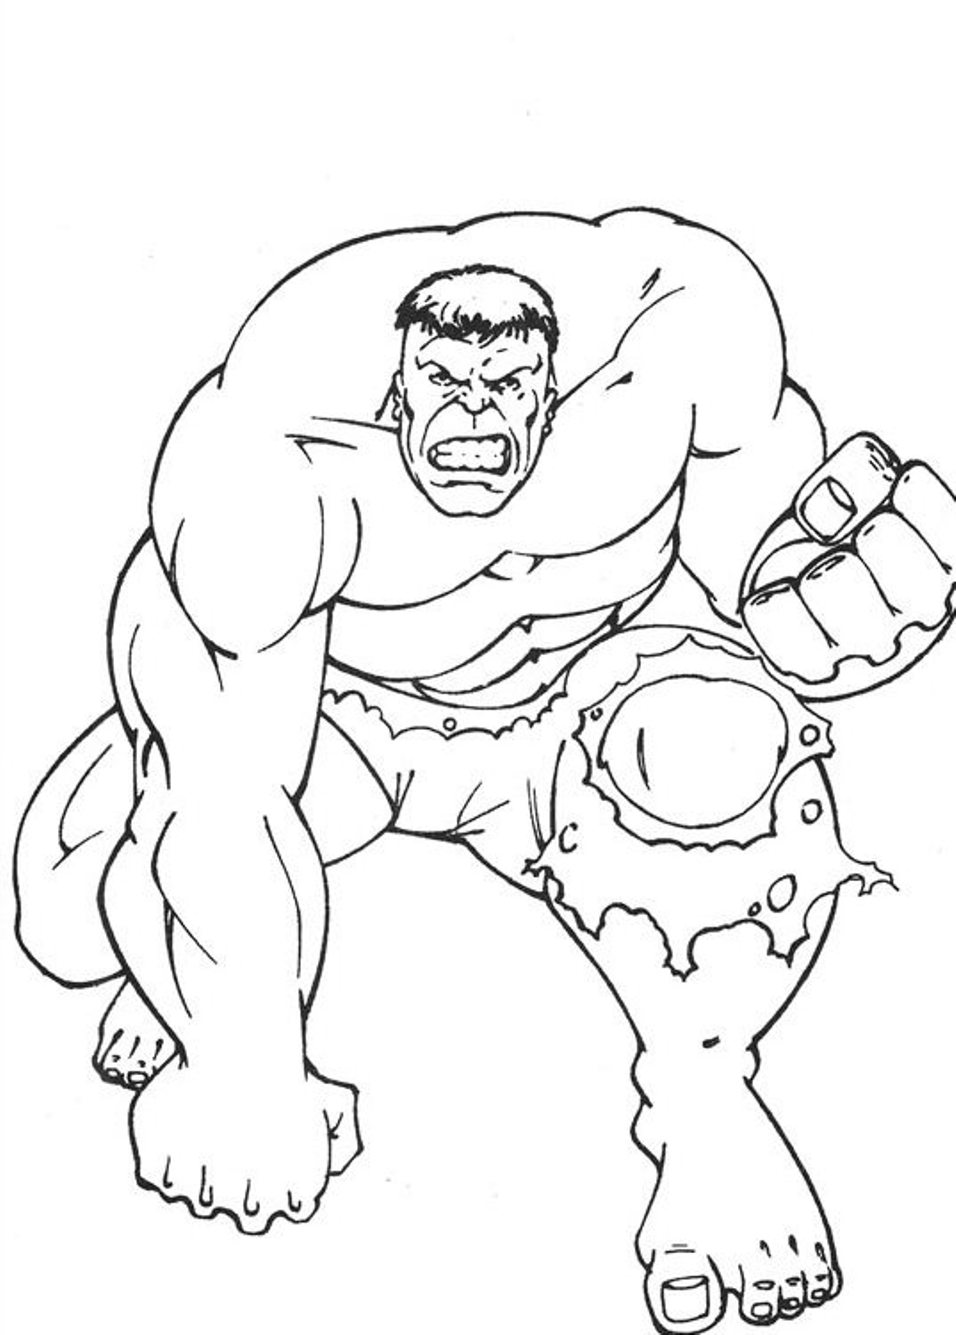 awesome hulk dessins à colorier